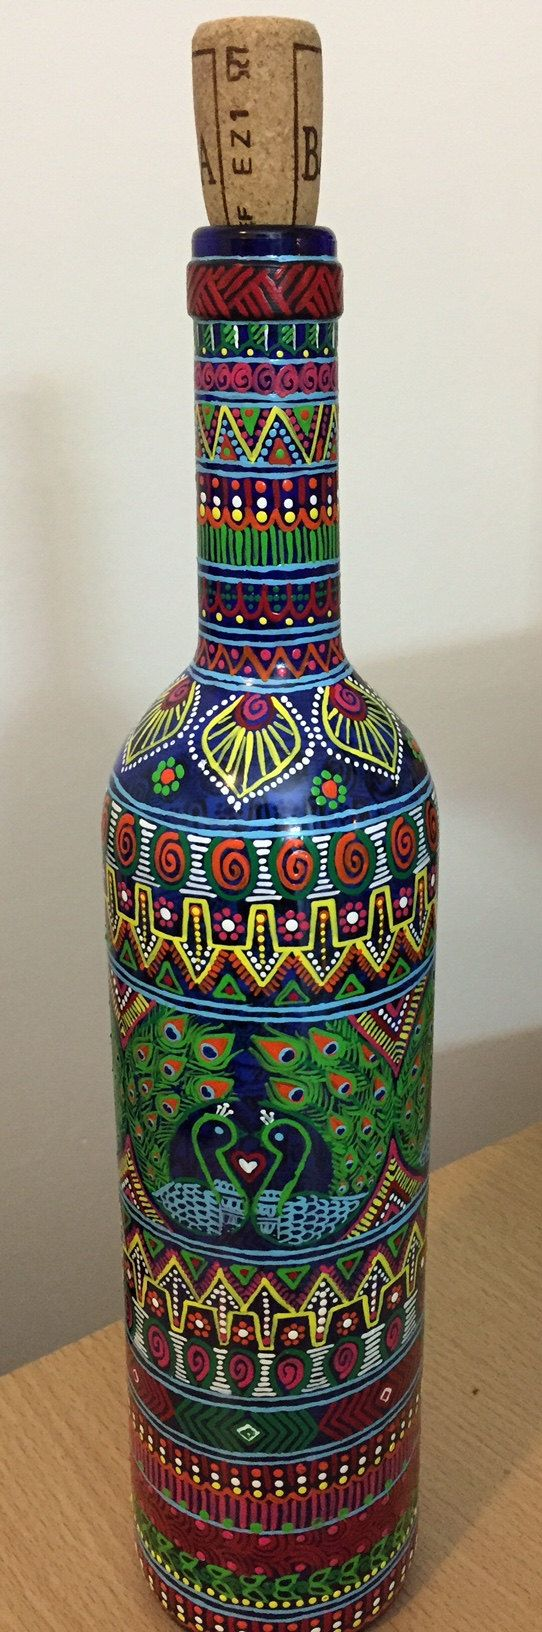 peacock painting on bottle 75 arts and crafts